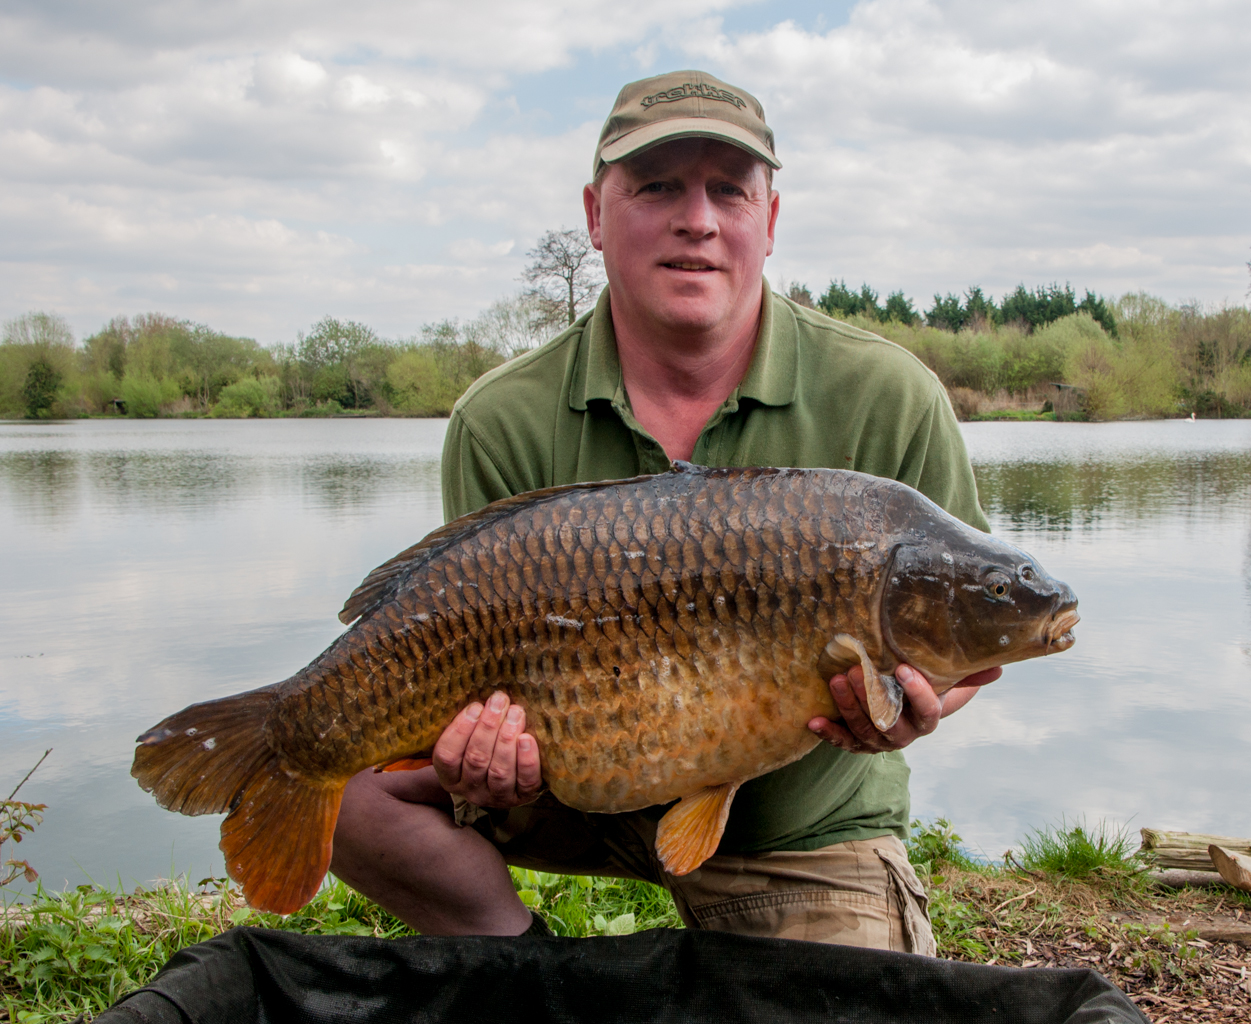 common carp 29 lb 2 oz -a